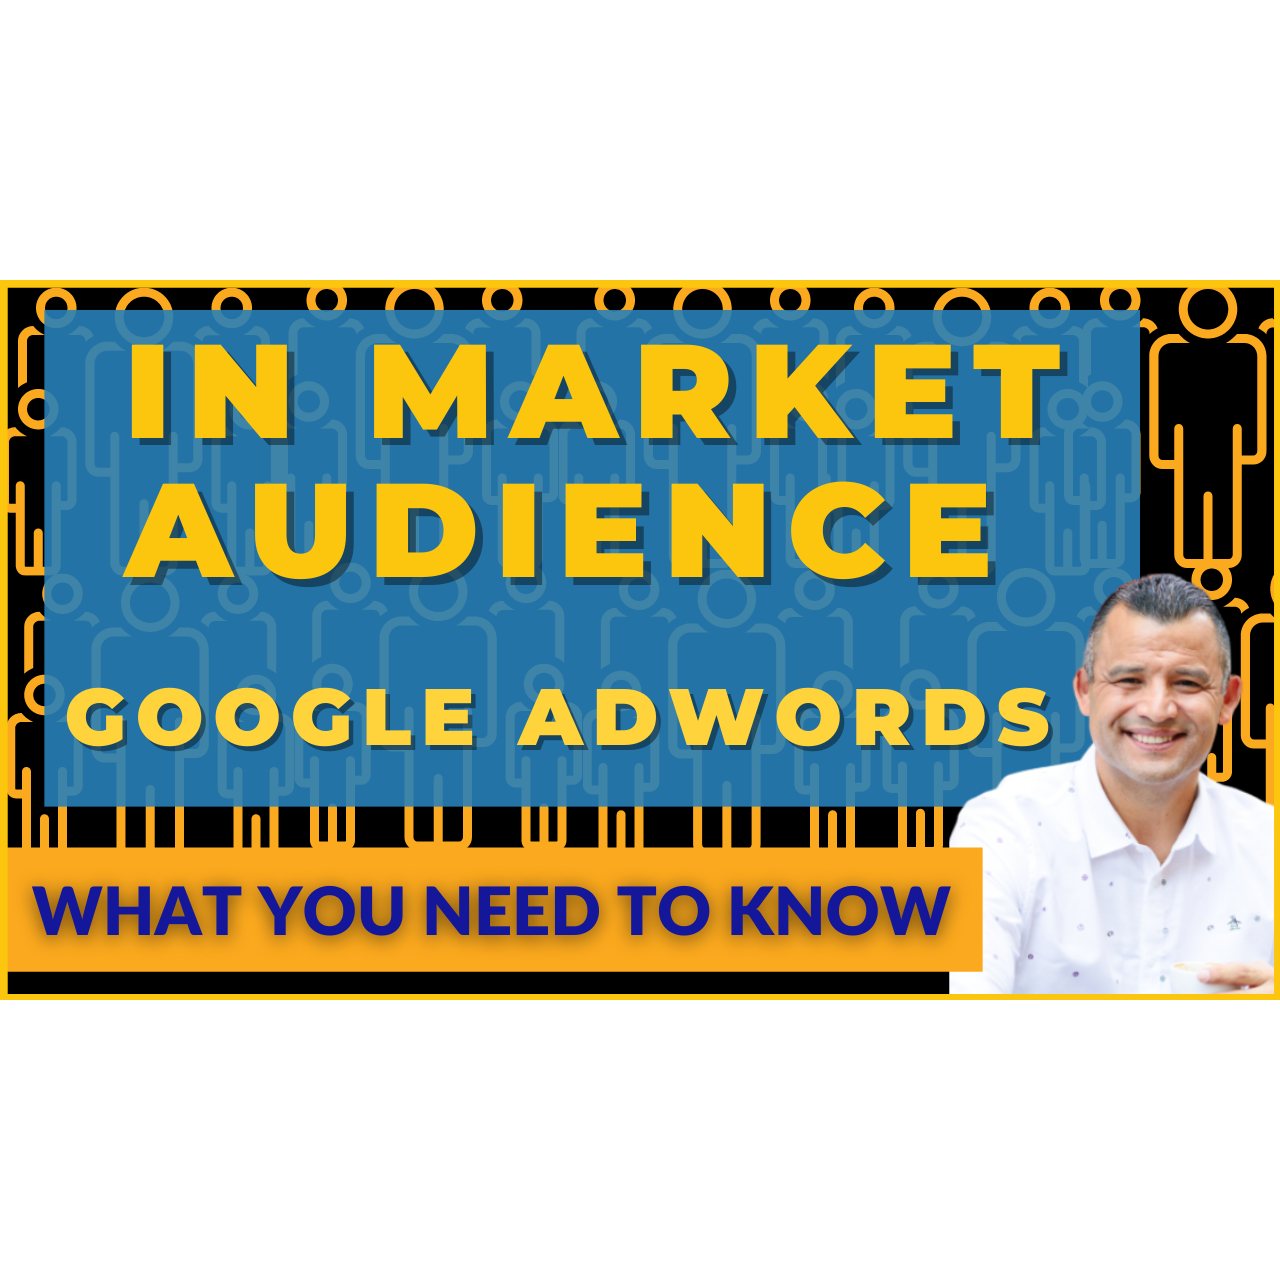 In Market Audience Adwords